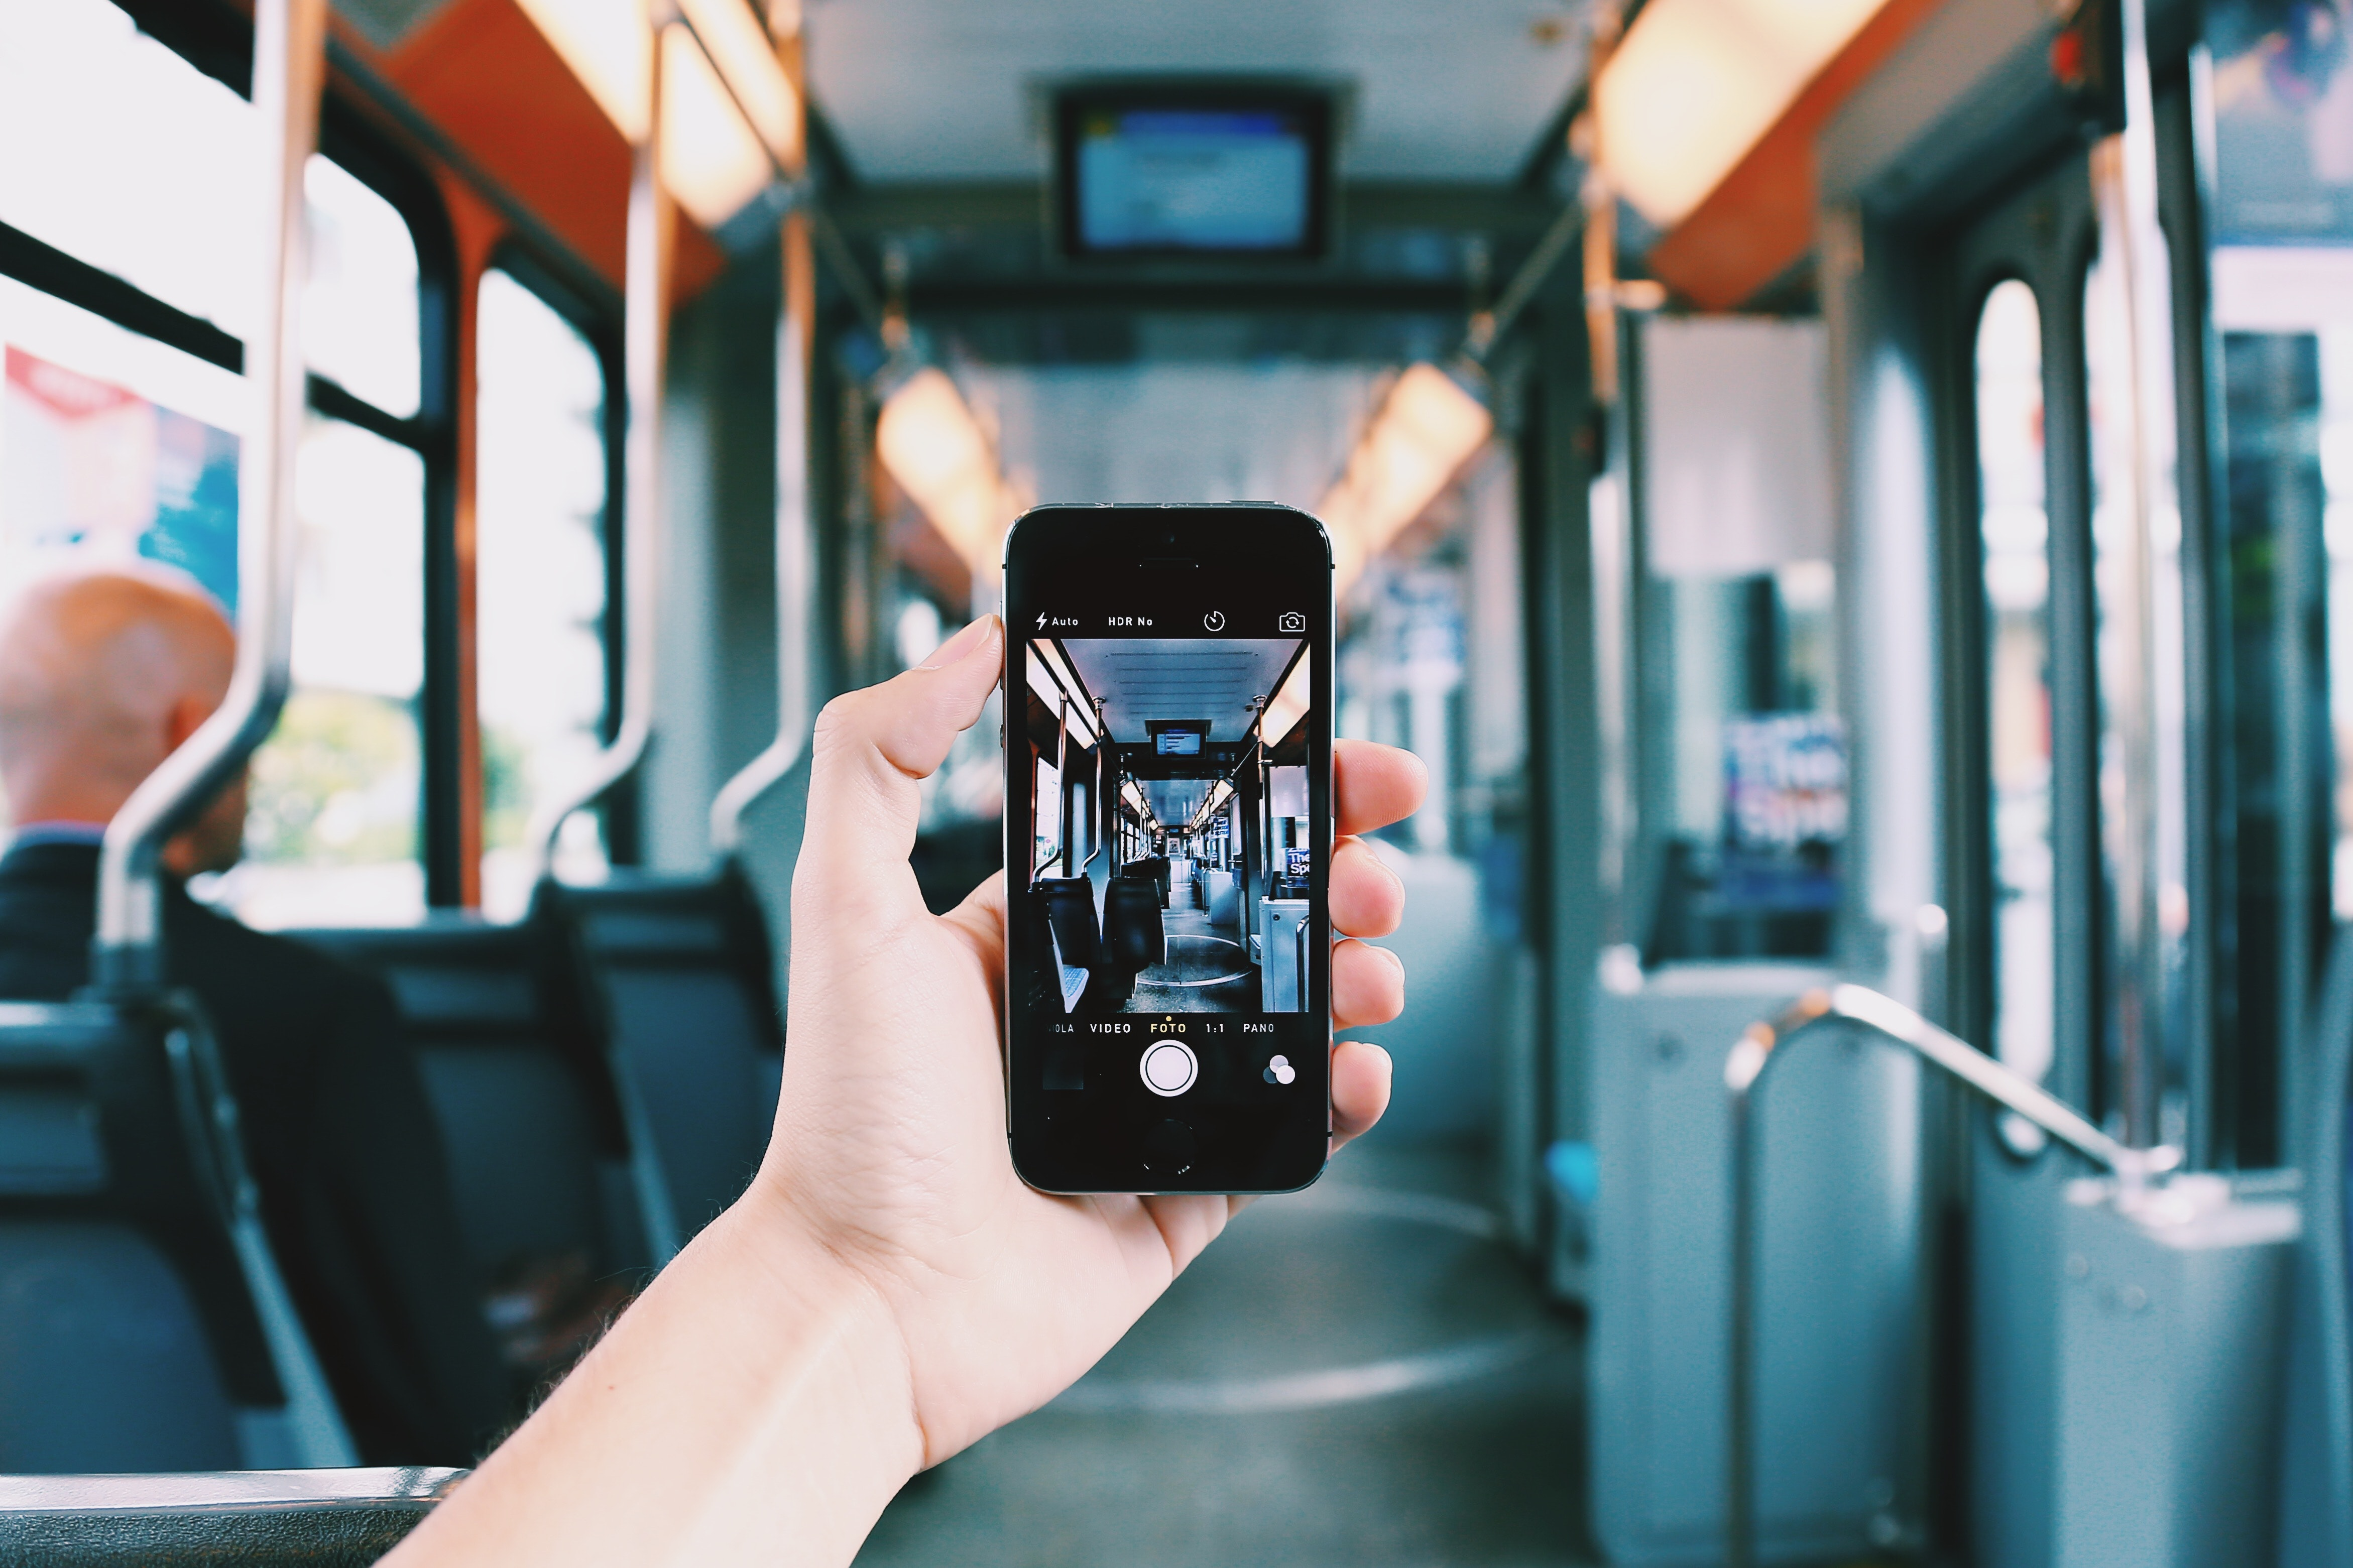 Person Holding Smartphone, Cellphone, Mobile phone, Transportation system, Train, HQ Photo